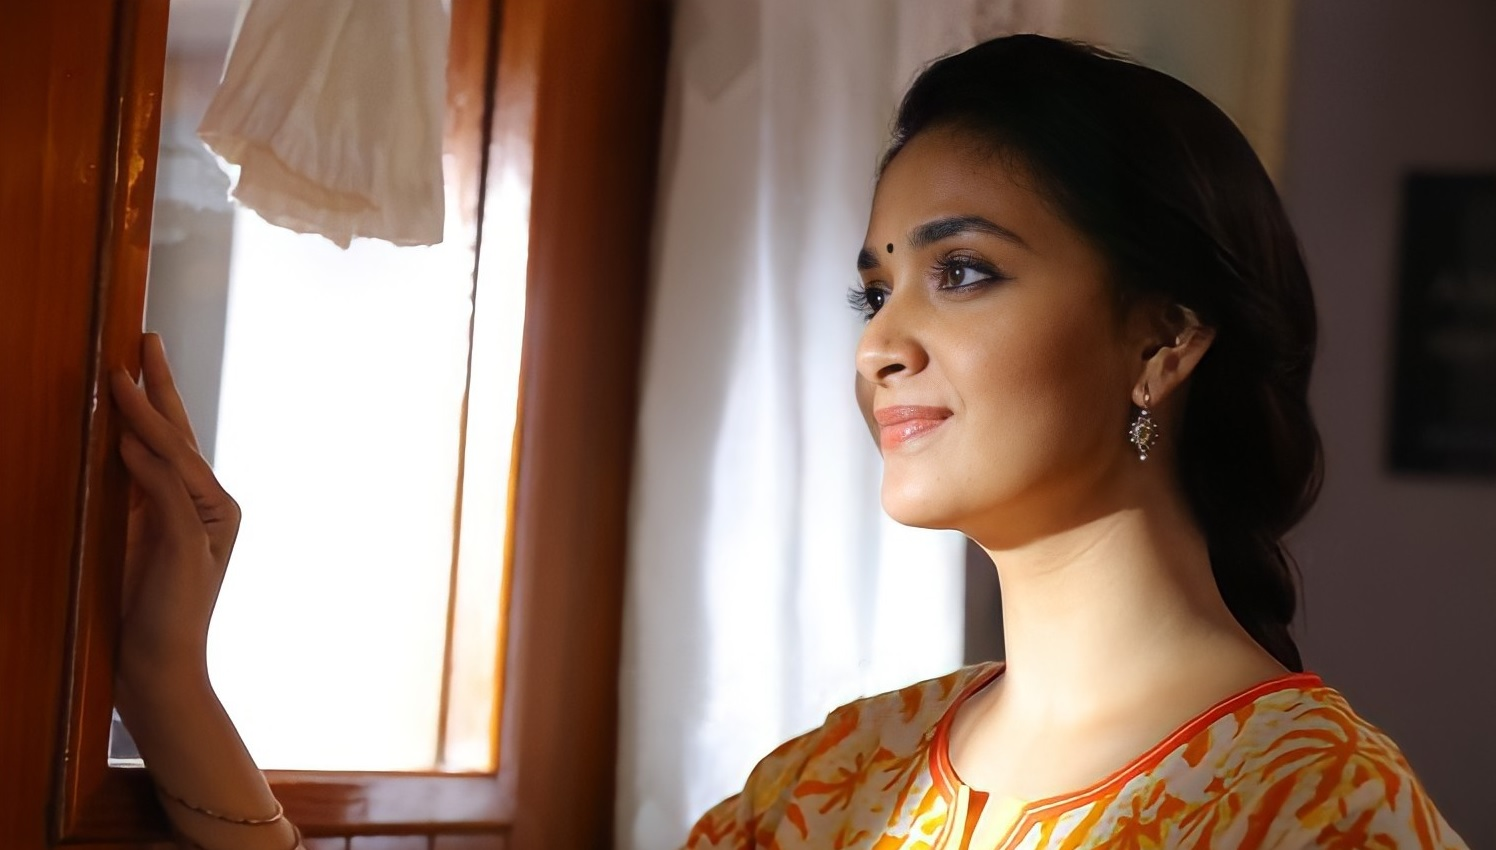 Keerthy Suresh Awesome Pretty Looks New HD Stills from Miss India 1